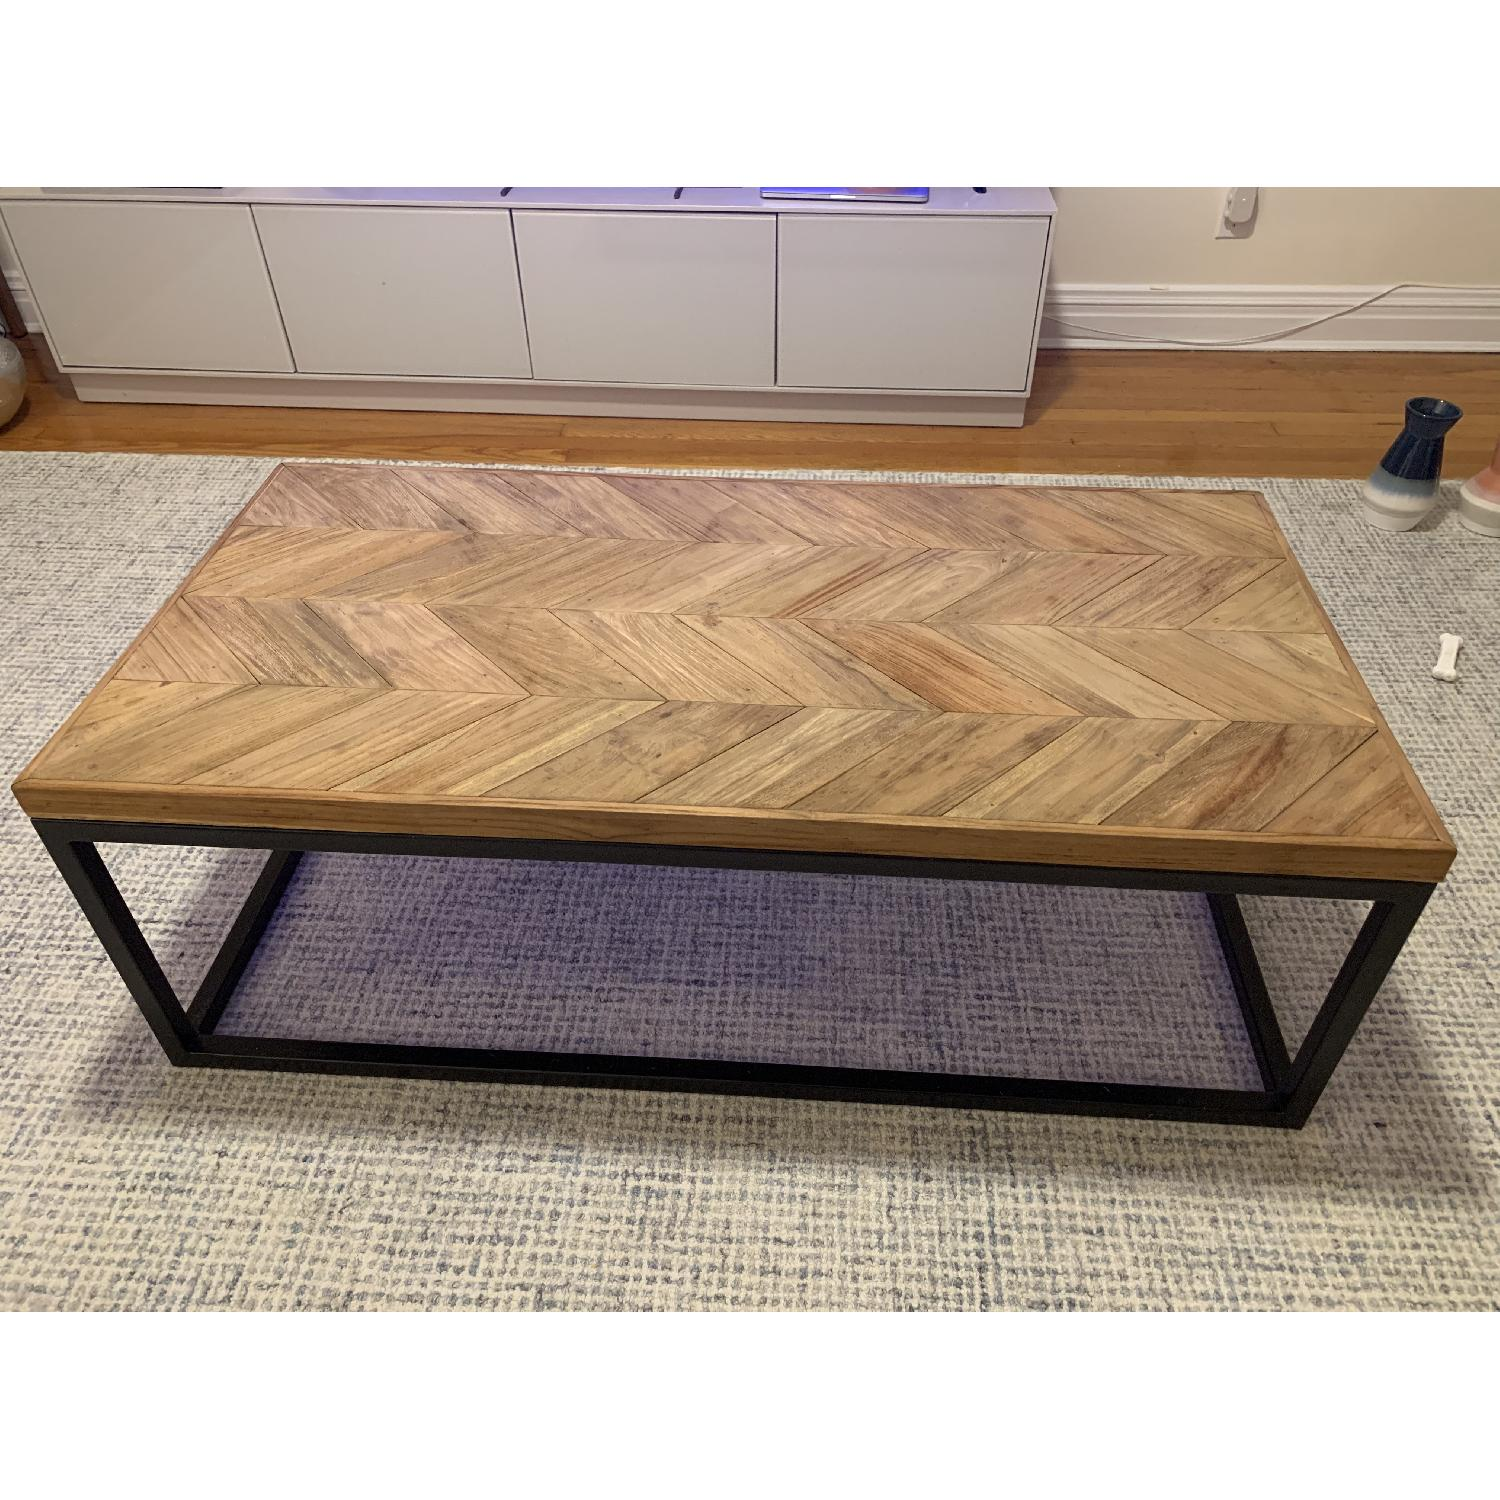 Crate & Barrel Dixon Coffee Table - image-4